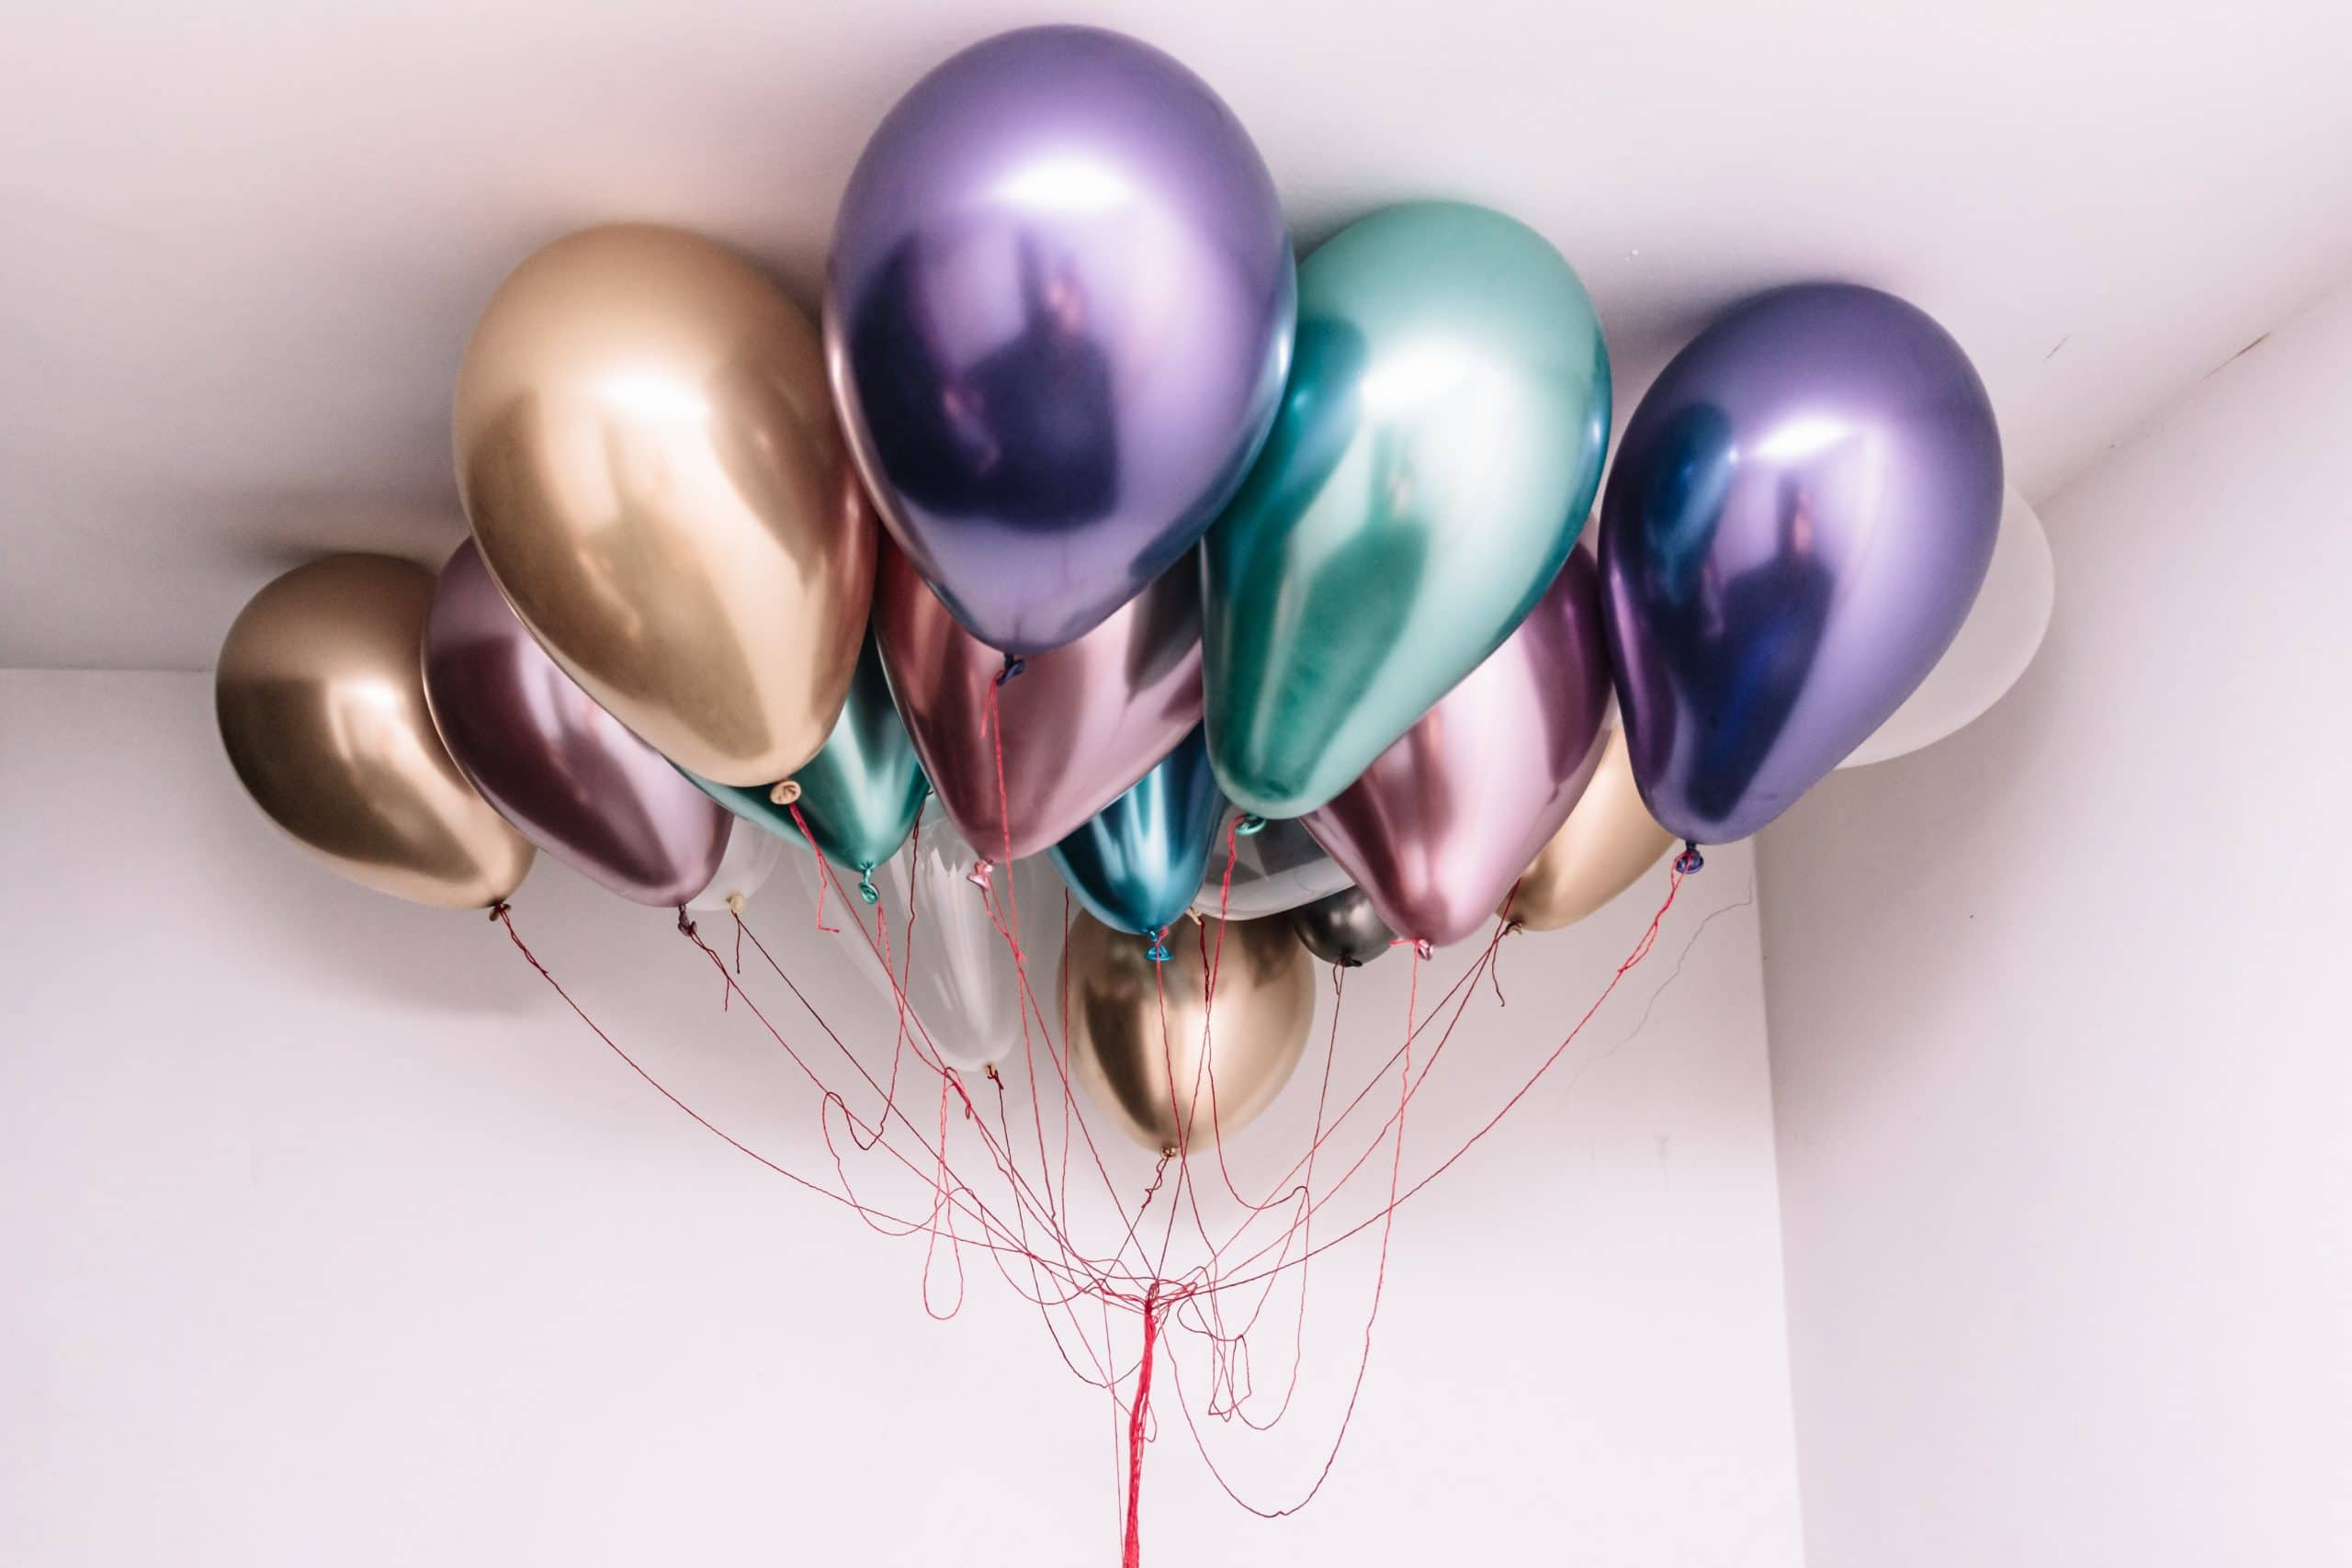 How Long Will Helium Balloons Last